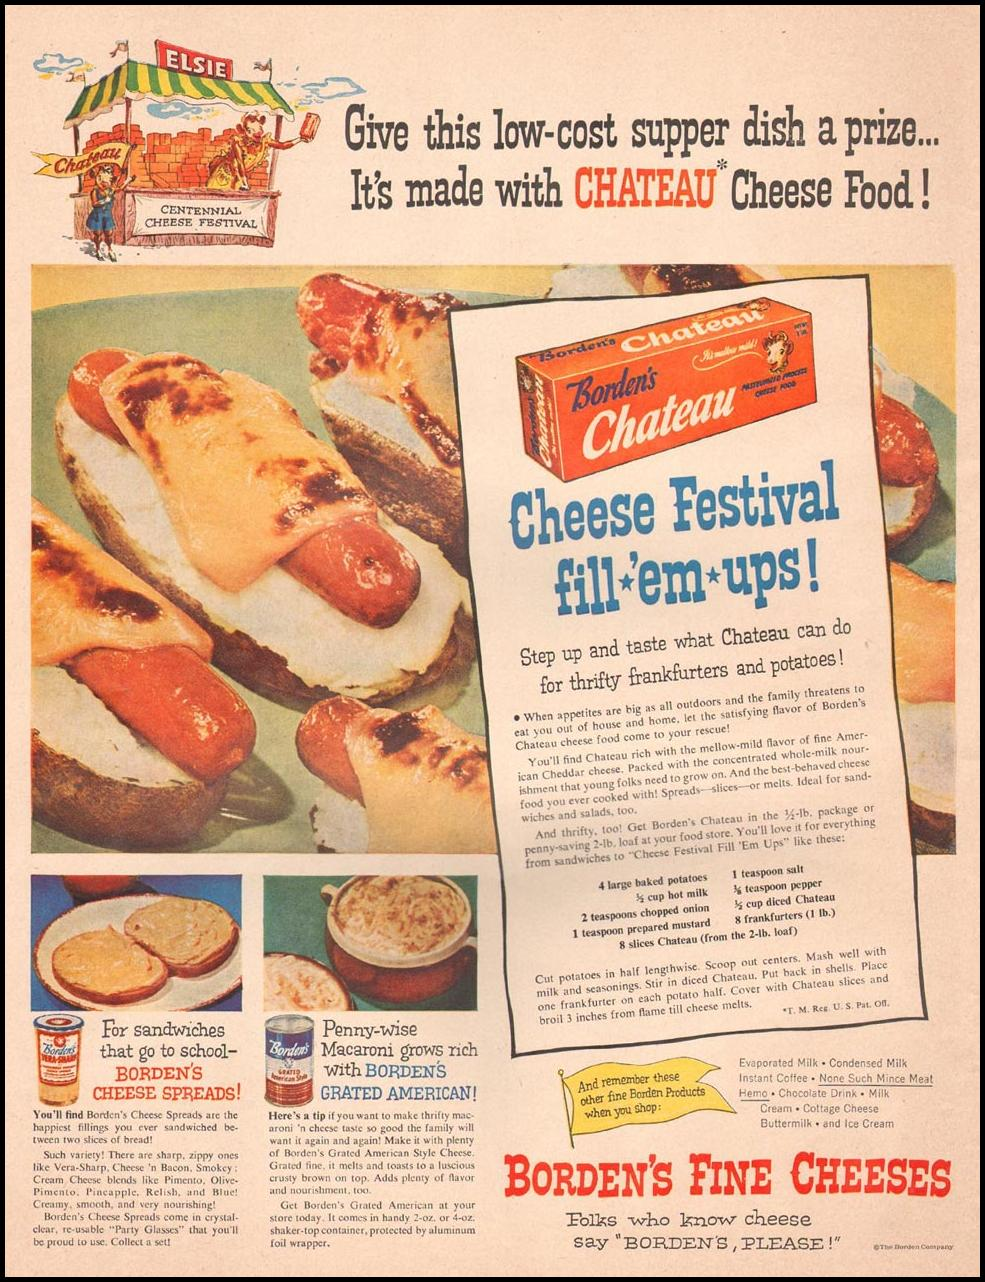 BORDEN'S FINE CHEESES